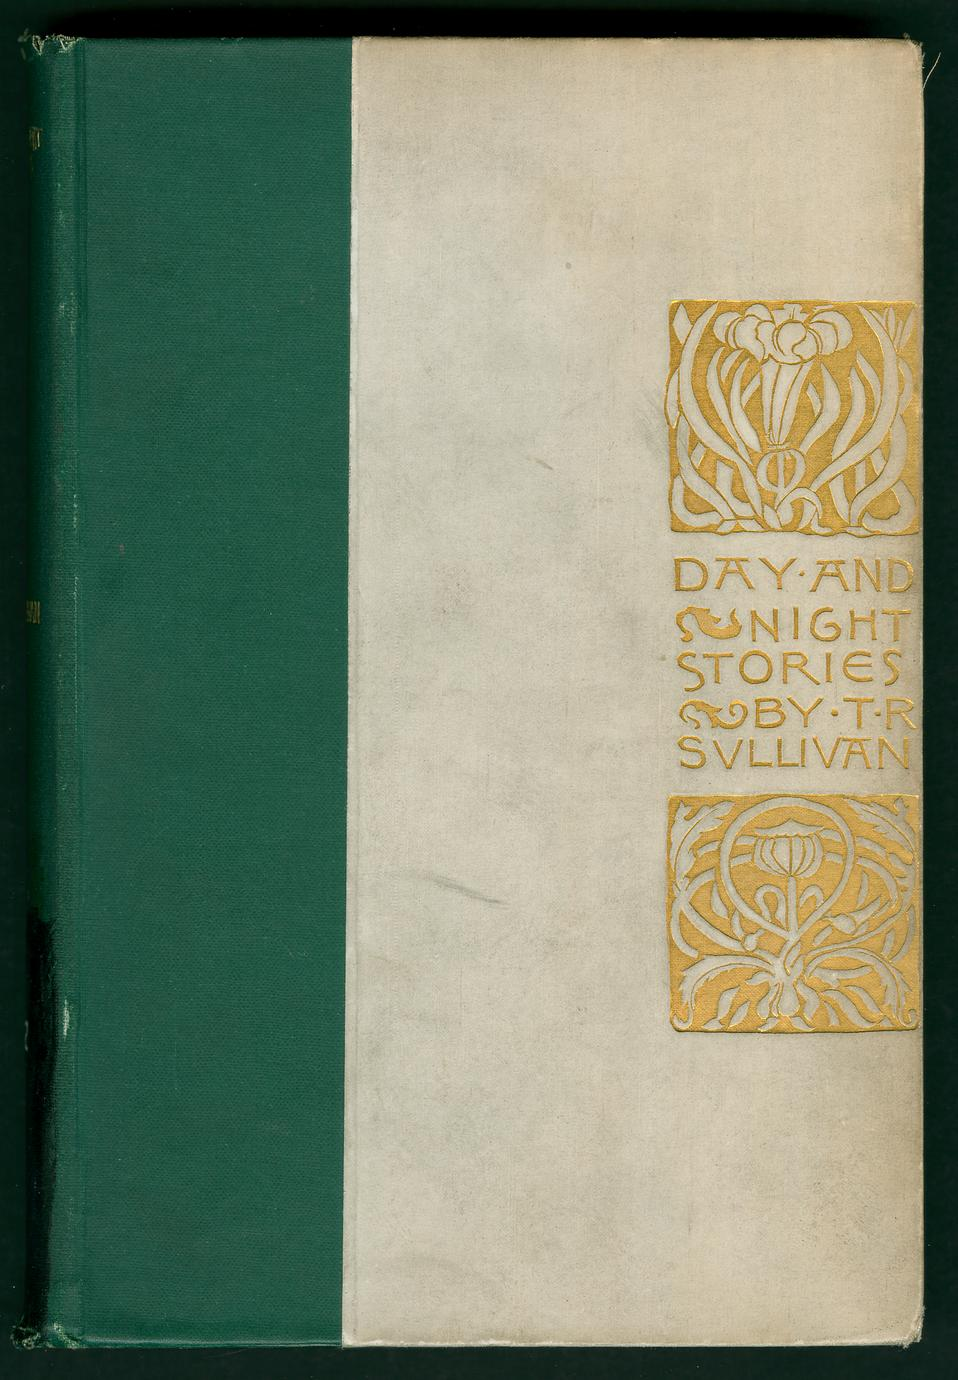 Day and night stories (1 of 2)